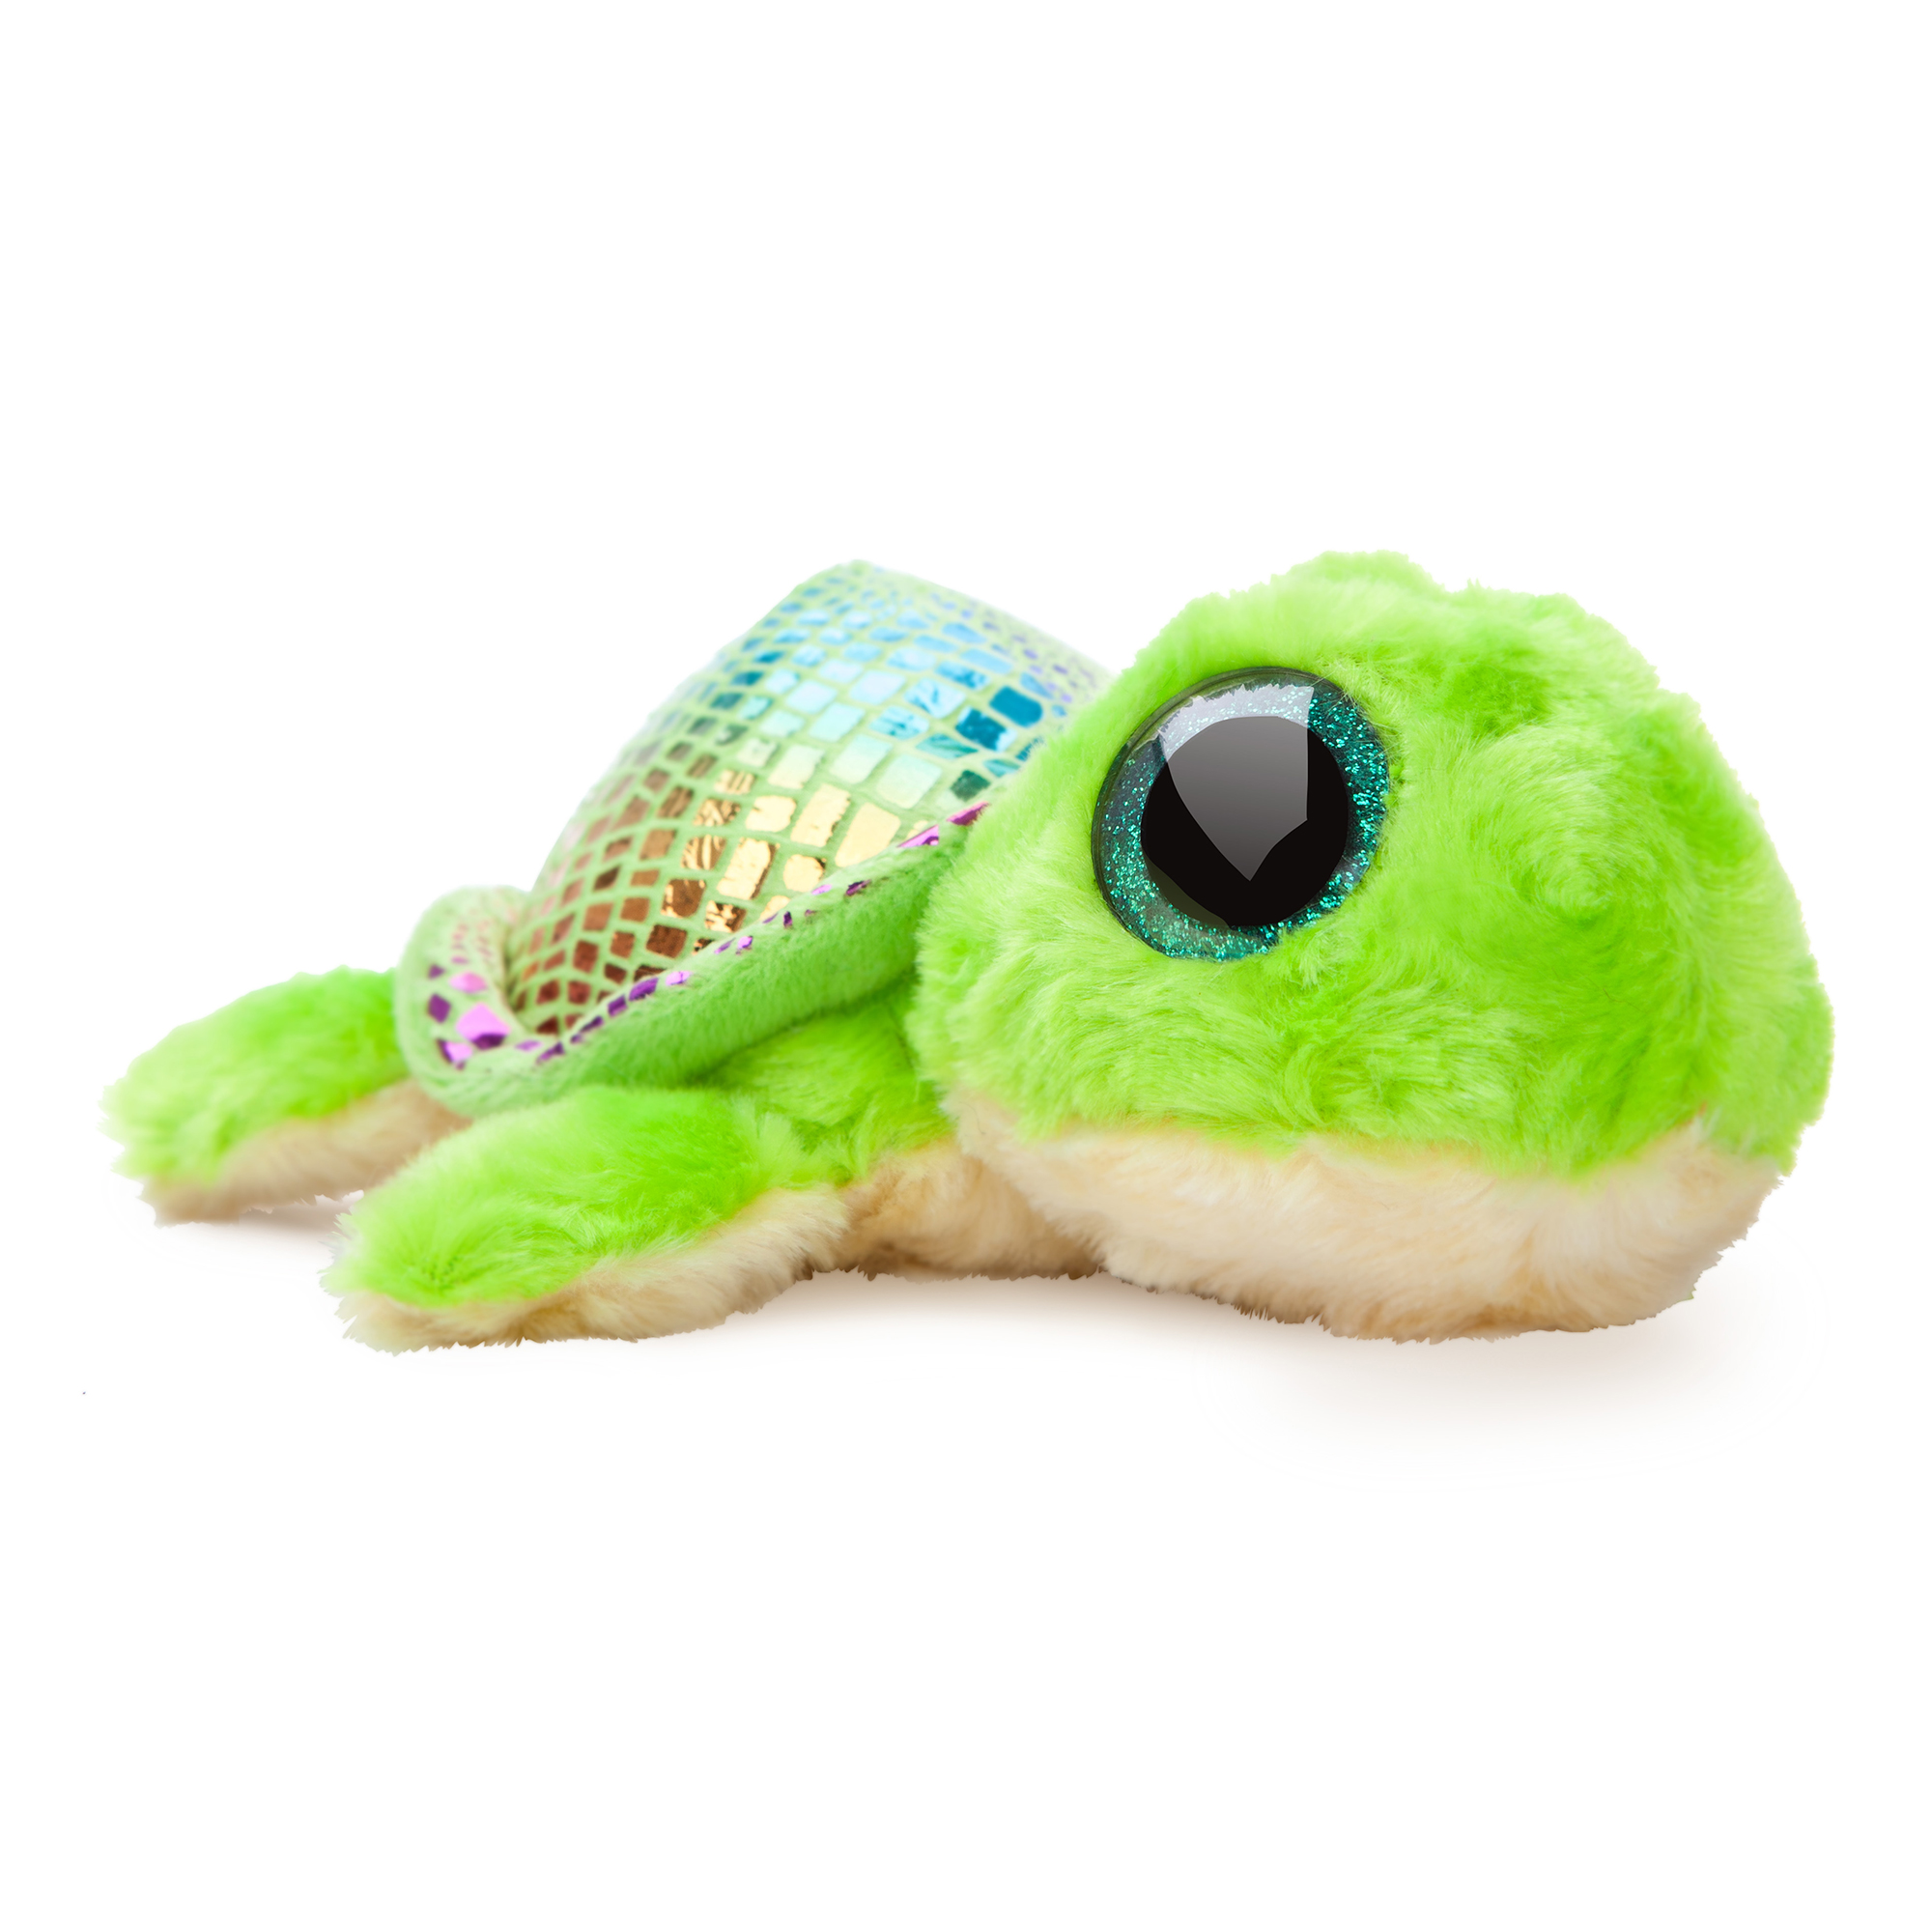 YooHoo & Friends 8-Inch Flippee Green Turtle